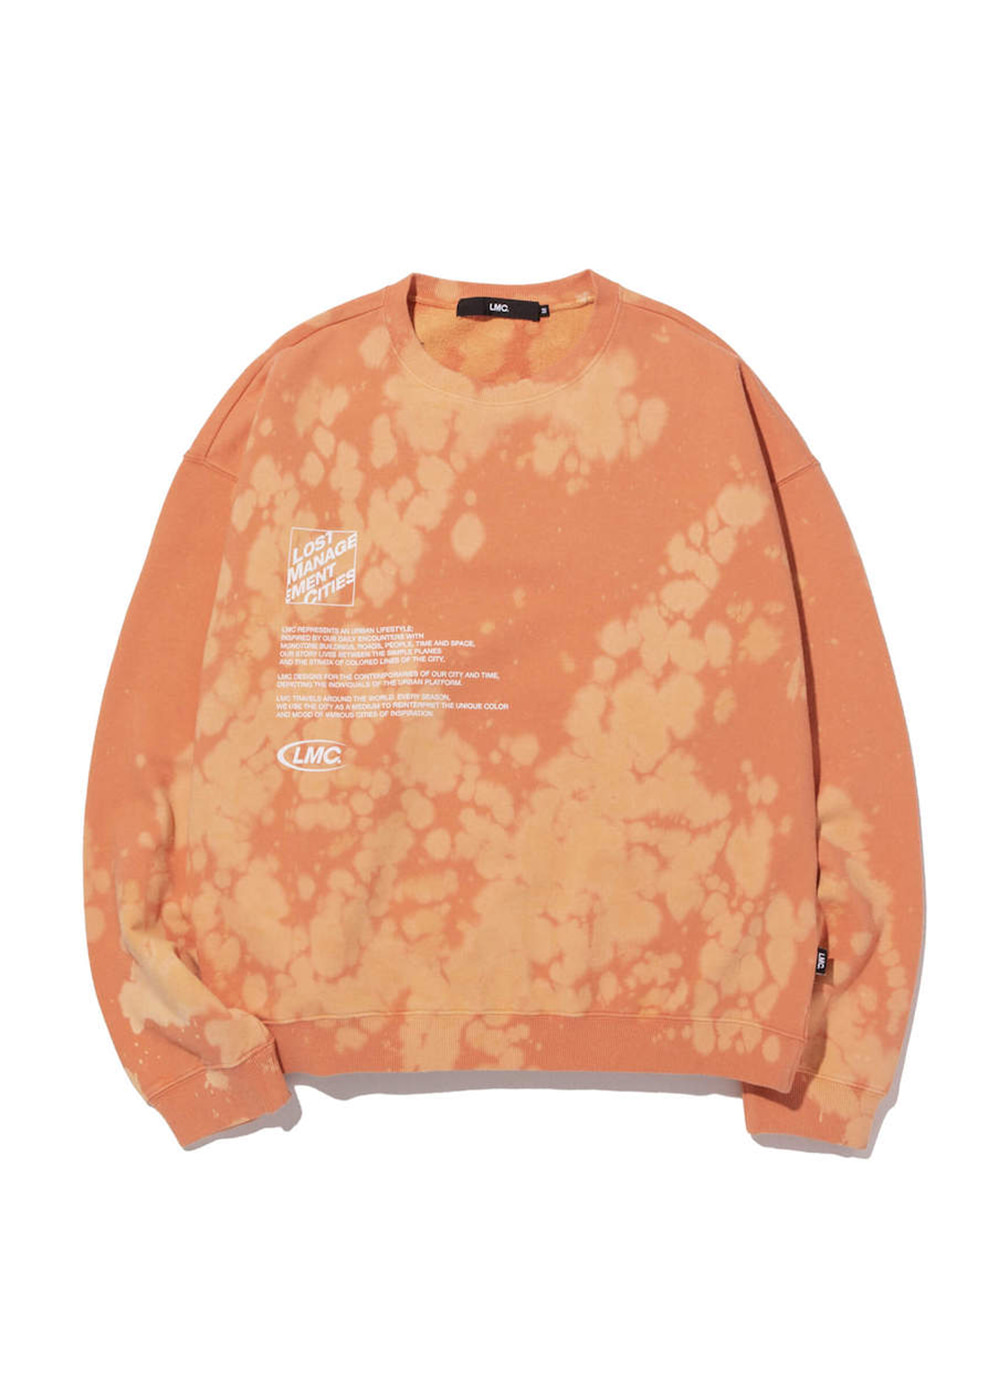 LMC EXPL BLEACH OVERSIZED SWEATSHIRT salmon